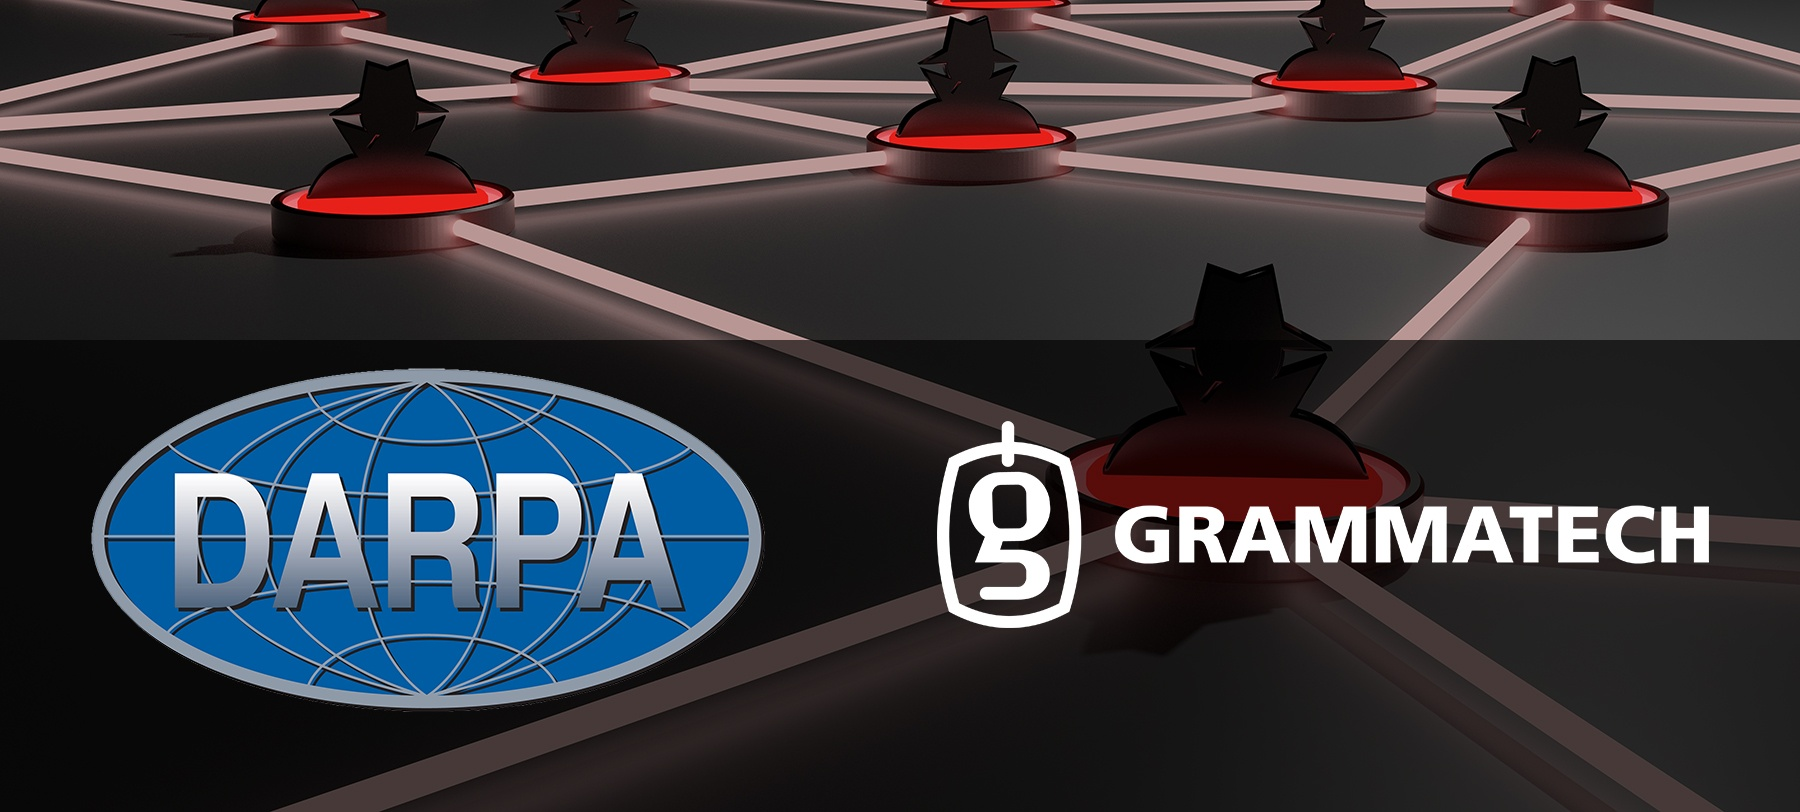 DARPA Awards GrammaTech $6.2M for Autonomous Botnet Neutralization Research